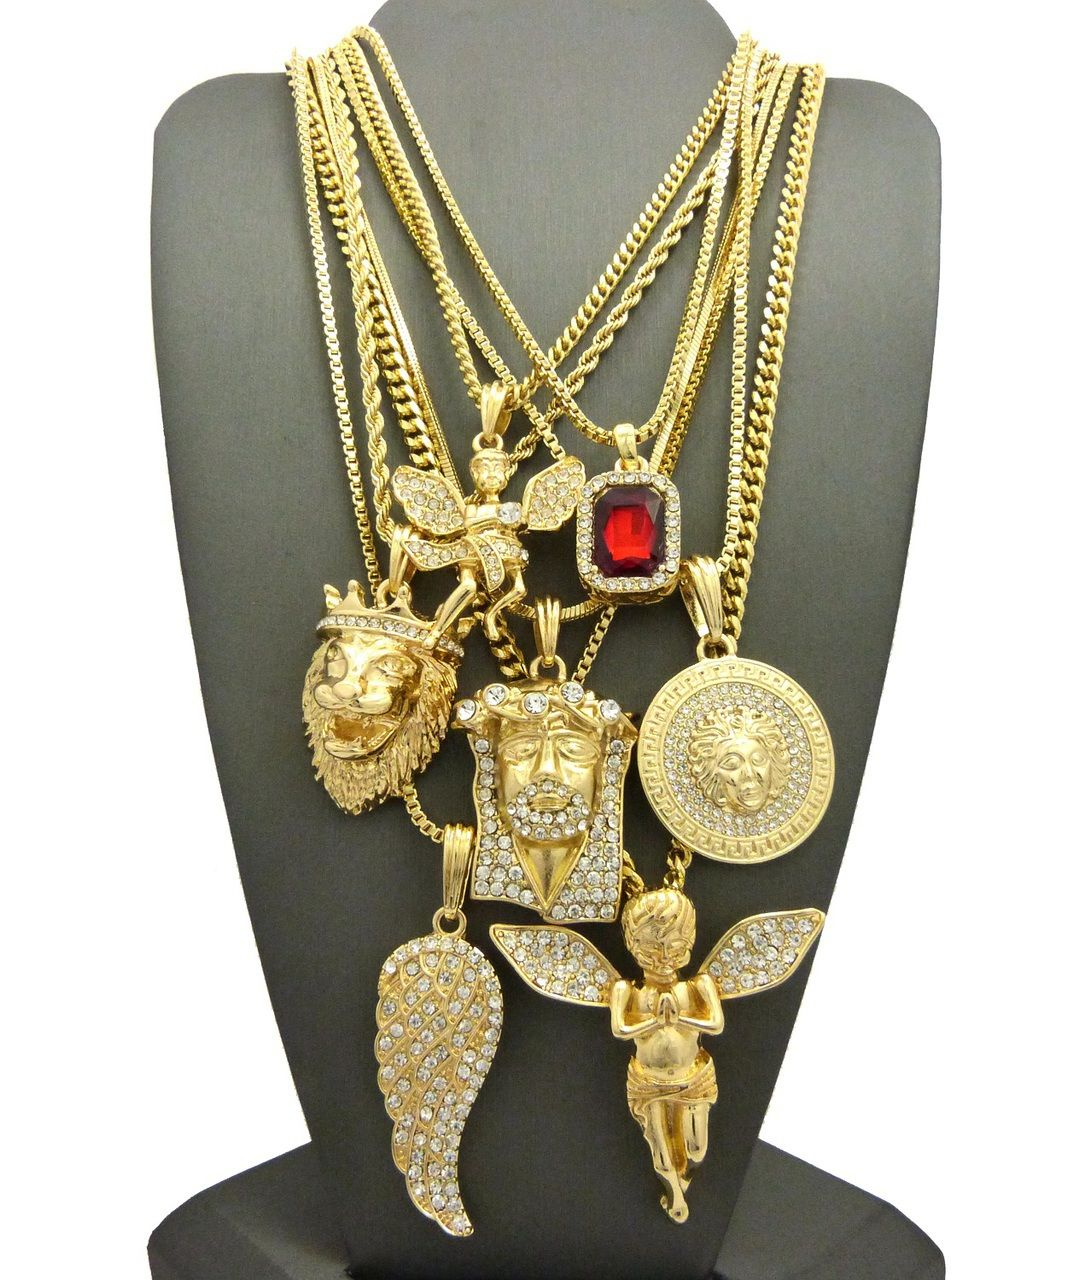 bc1f6ee567fb8 Evil is Present Jesus Piece 14k Gold Ultra Baller Hip Hop Chains ...